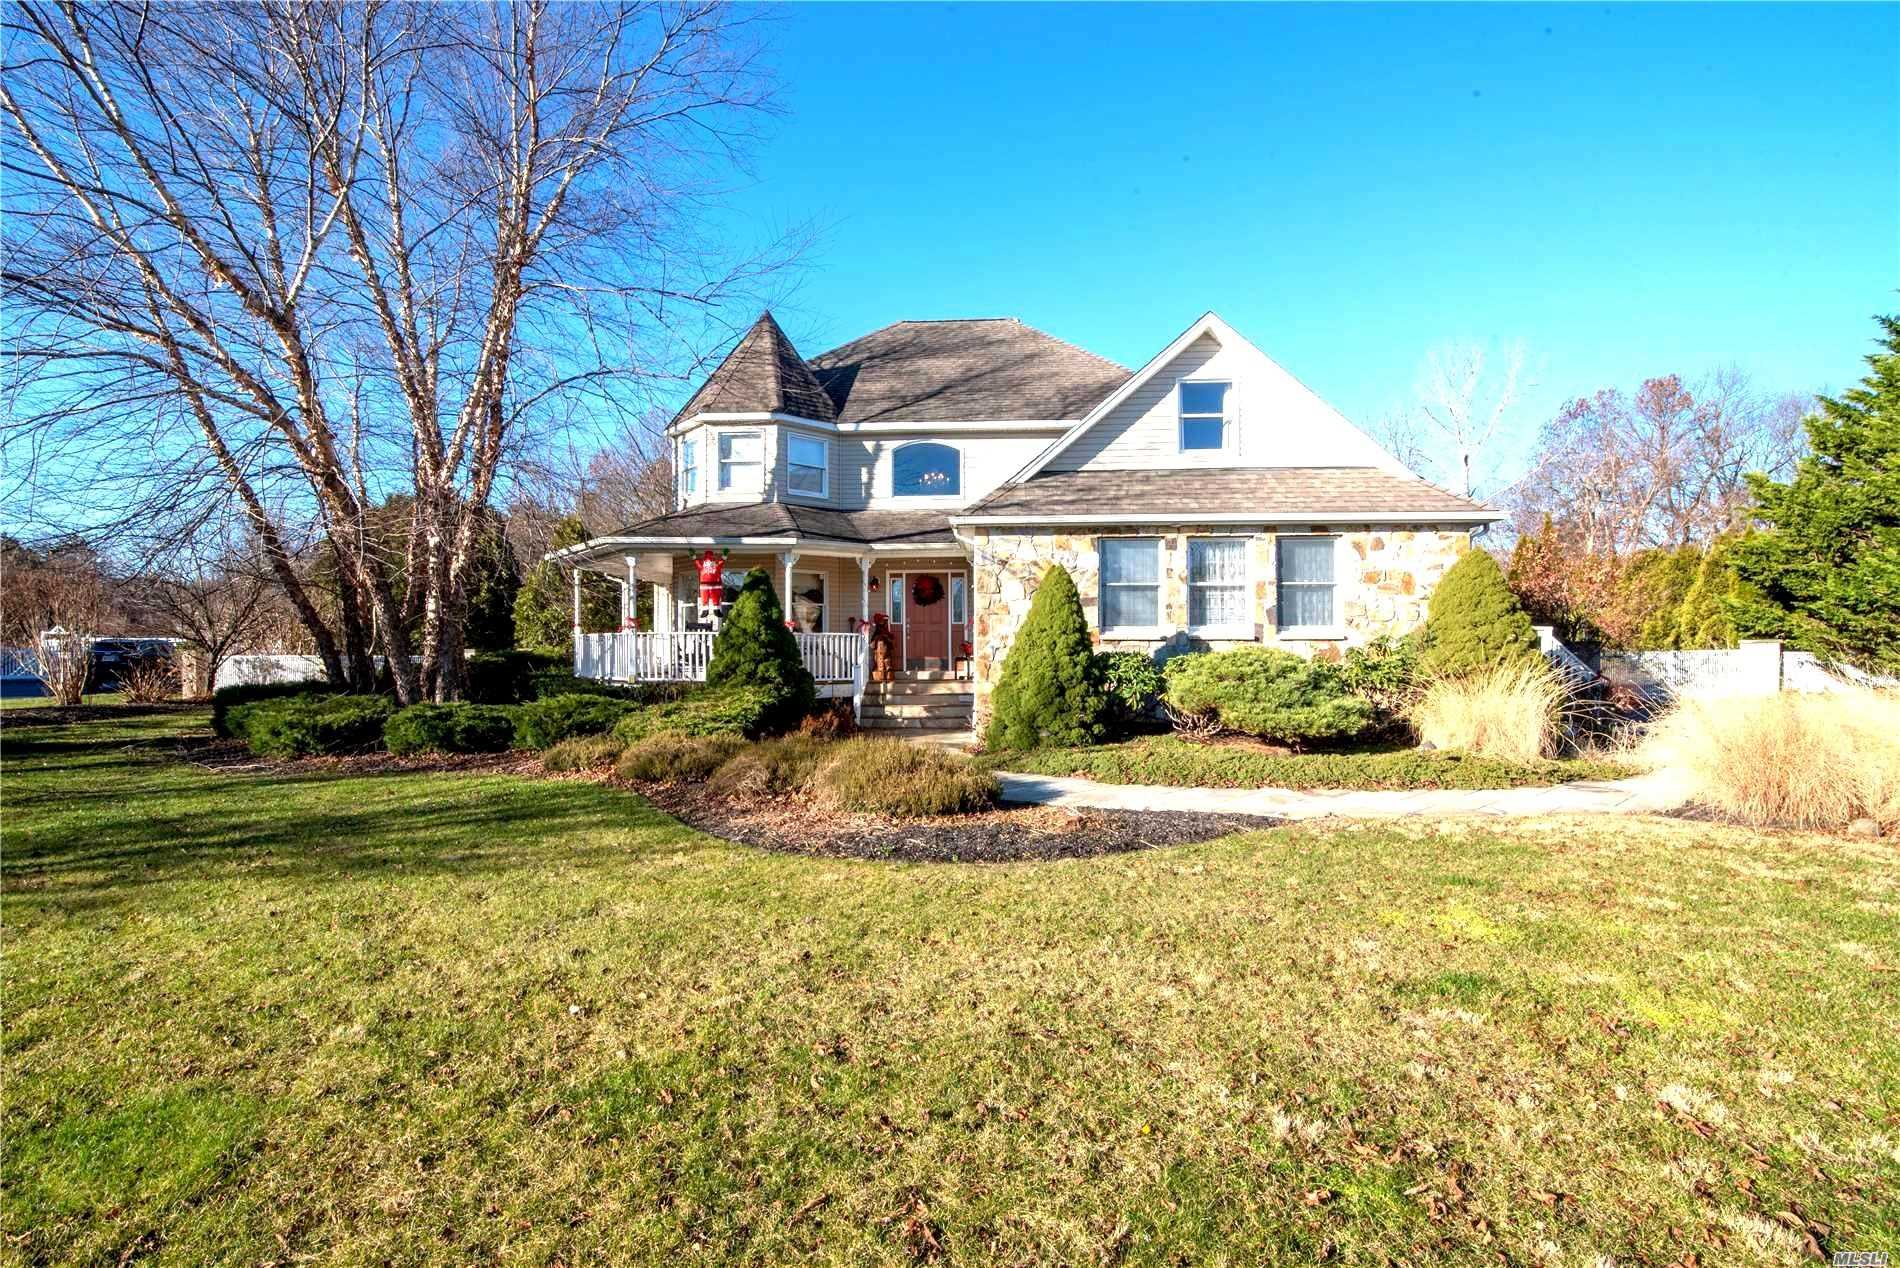 Desired Meadow Crest Offers Victorian W/Granny Porch Nestled In Cul-De-Sac With Country Club Back Yard W/2 Yr Saltwater Pool, Outdoor Kitchen Includes Pizza Oven, D.C.S. B.B.Q.. Refrigerator W/Bluestone Patio And 2.5 Car Det. Garage W/Loft.Complete Guest Quarters. Kitchen W/Radiant Heat &Granite Flrs, Counters, Farm Sink. 2Frplcs, Wdflrs, Upper Level Laundry, Cvac, Full Finished Basement. Mins To Beach, Dining, Shopping, 495....